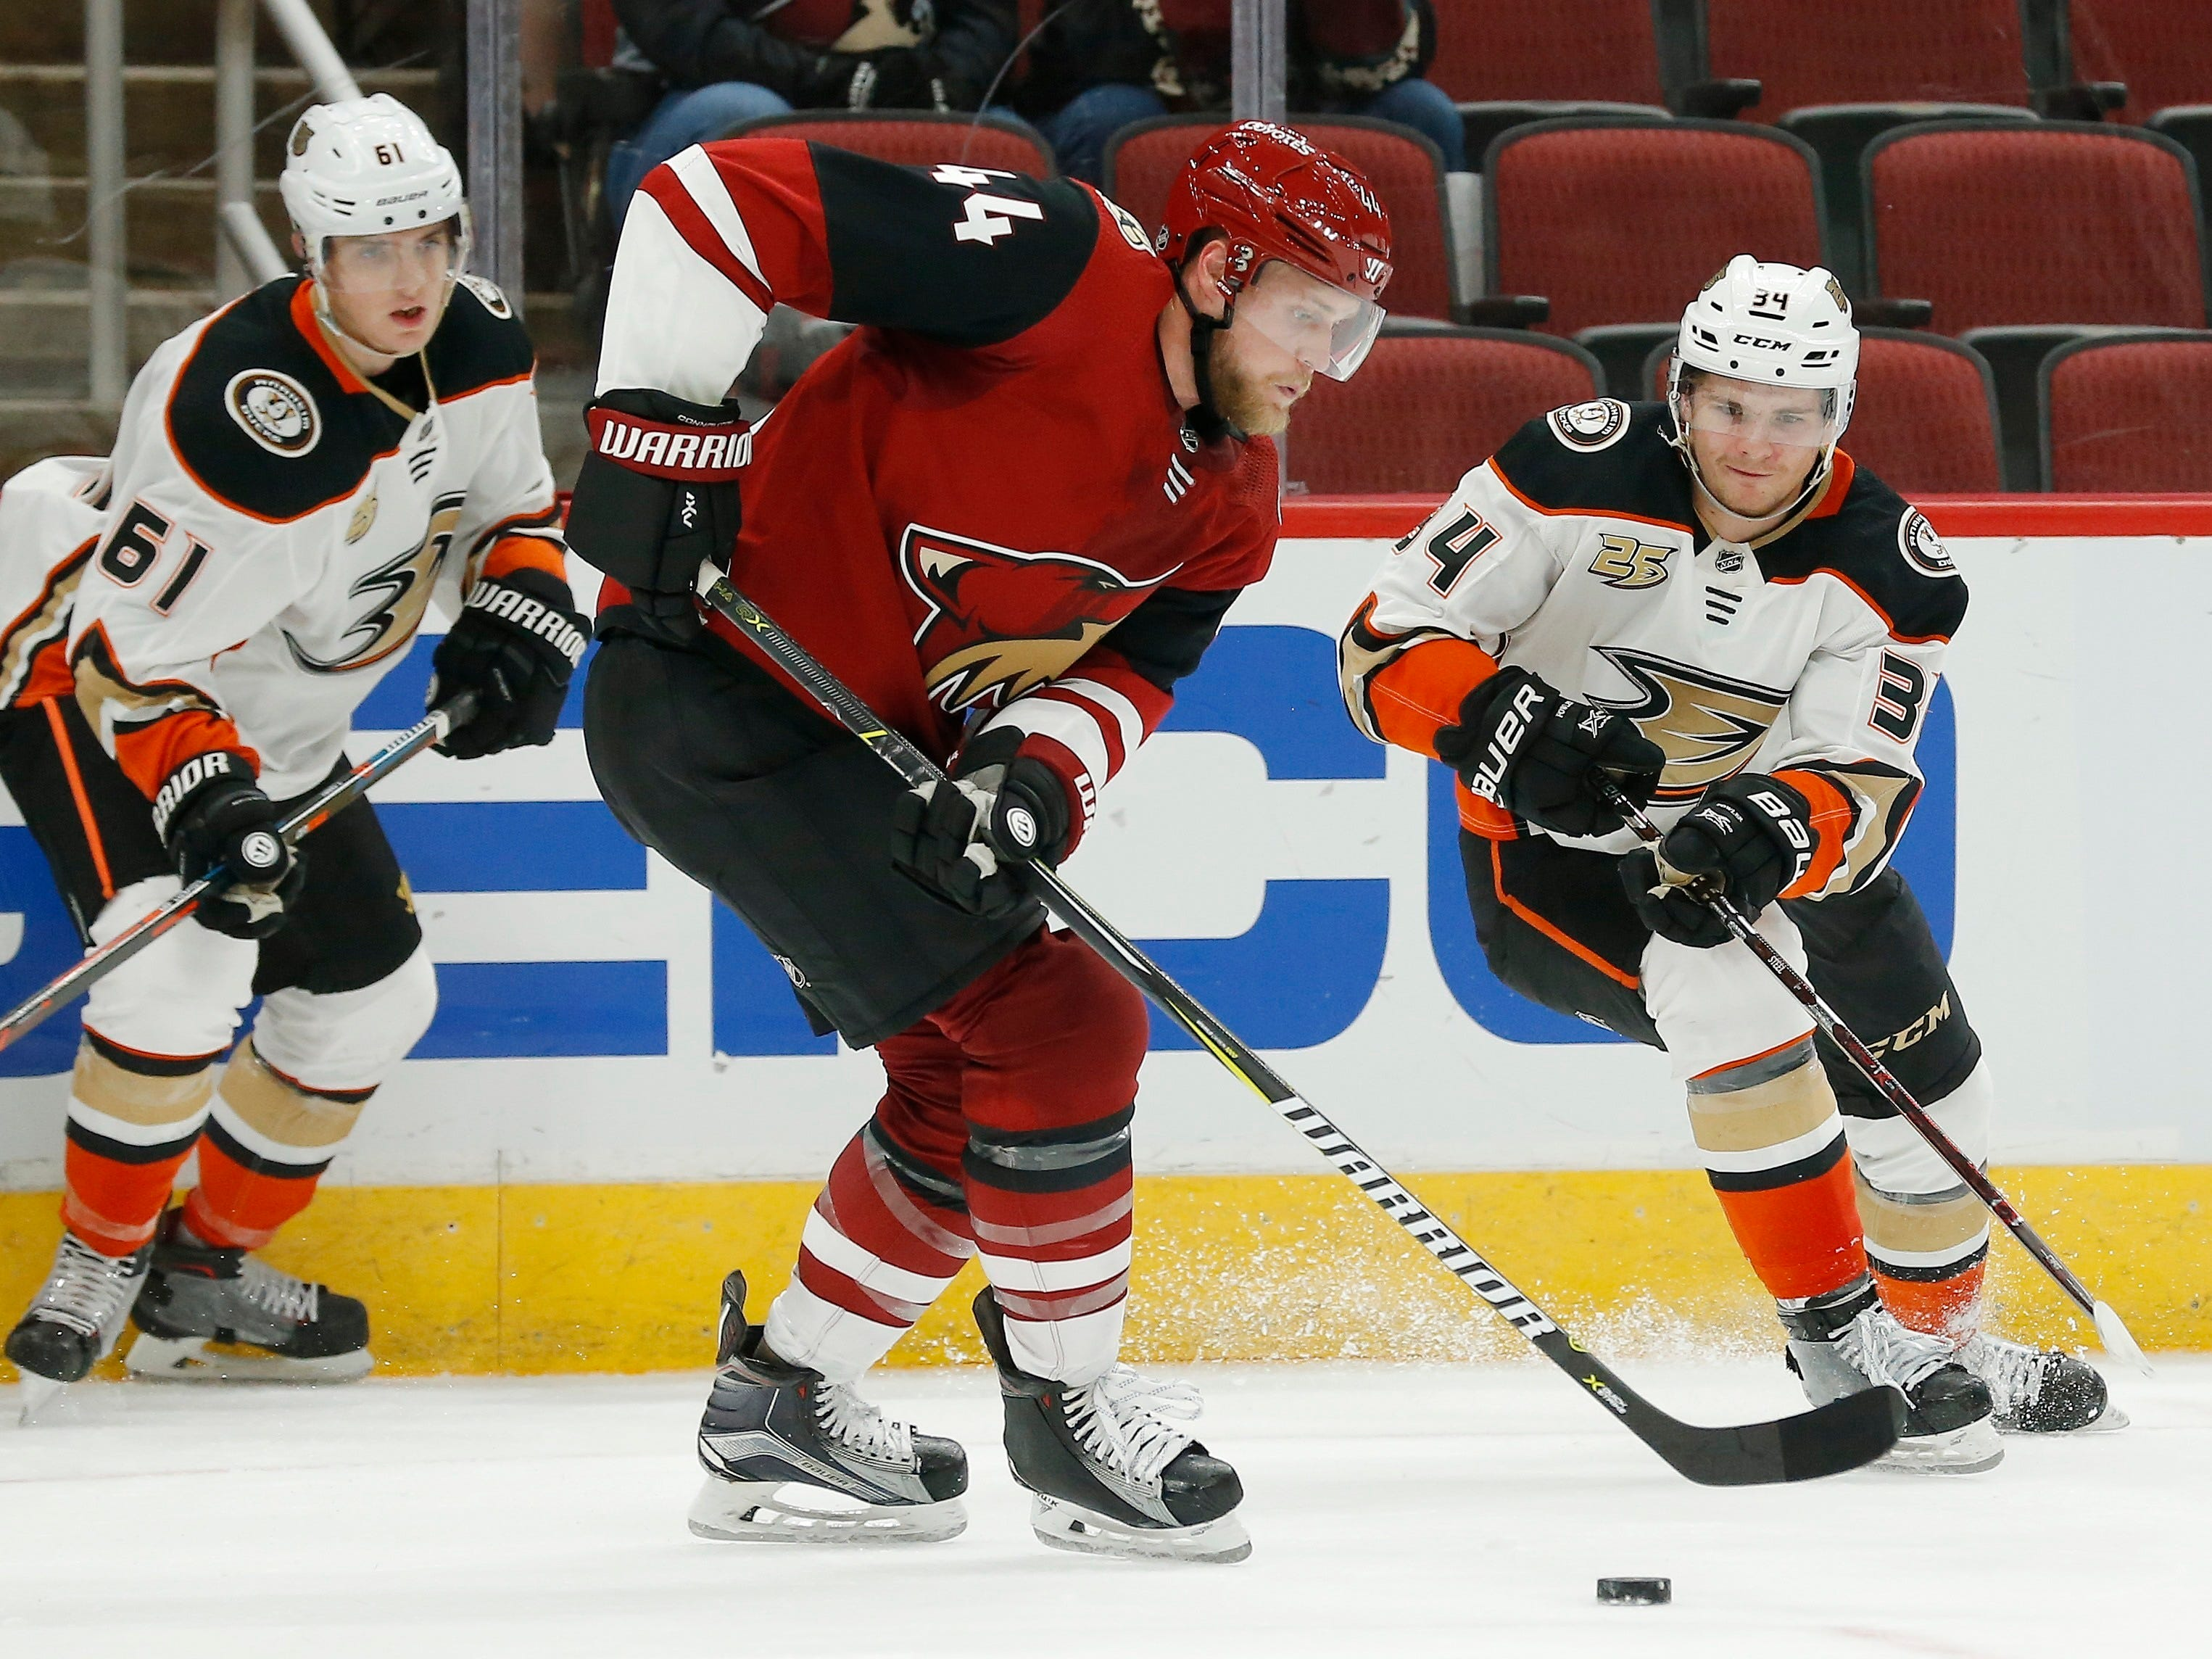 Arizona Coyotes defenseman Kevin Connauton (44) skates past Anaheim Ducks center Sam Steel (34) and right wing Troy Terry (61) during the third period of an NHL preseason hockey game Saturday, Sept. 22, 2018, in Glendale, Ariz. The Coyotes defeated the Ducks 6-1.